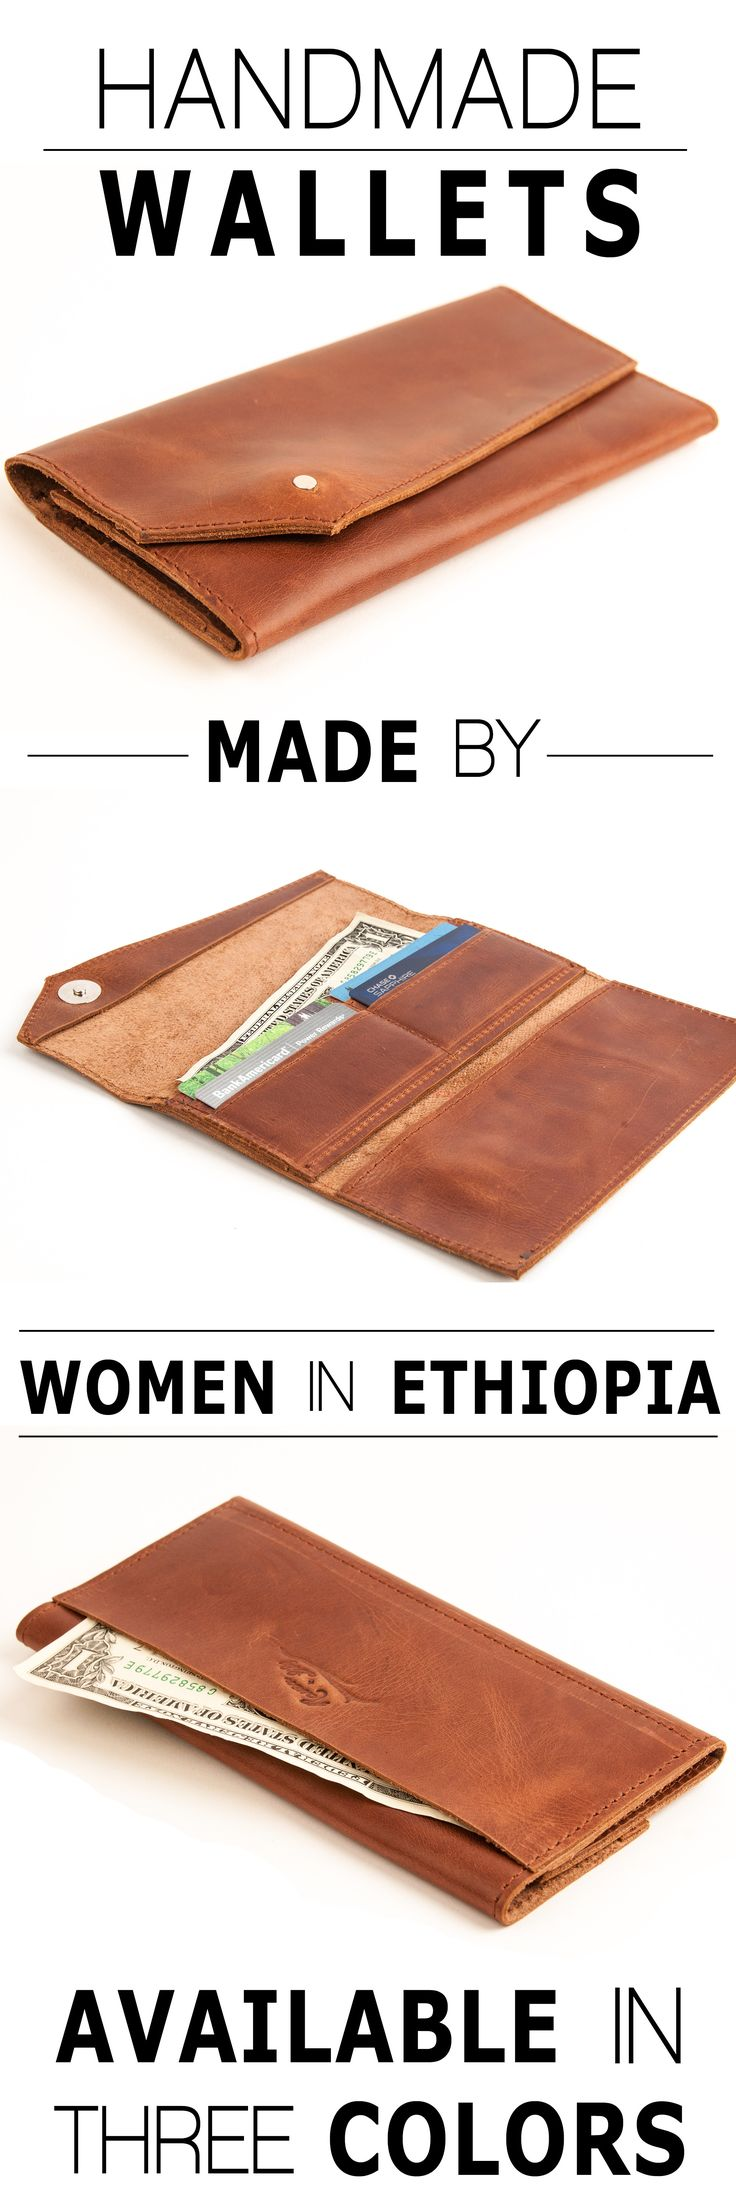 A wallet made from at-risk artisan women in Ethiopia. Absolutely love the superior quality of this handcrafted stitched leather wallet. Also keep the story going by choosing a cause to donate to. 10% goes to the cause of your choice.